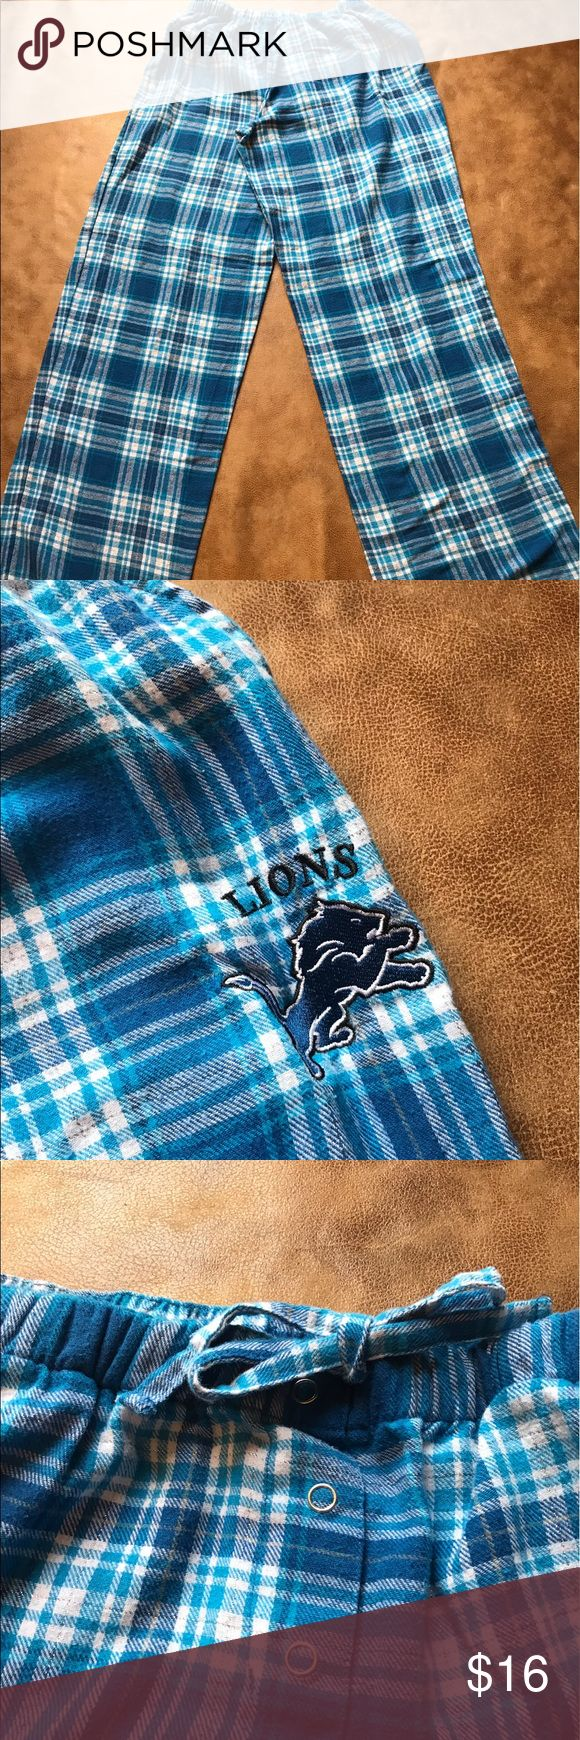 NFL Detroit Lions pajama bottoms. NFL flannel plaid Detroit Lions pajama bottoms. Good condition. Thanks for visiting my closet. NFL Team Apparel Intimates & Sleepwear Pajamas